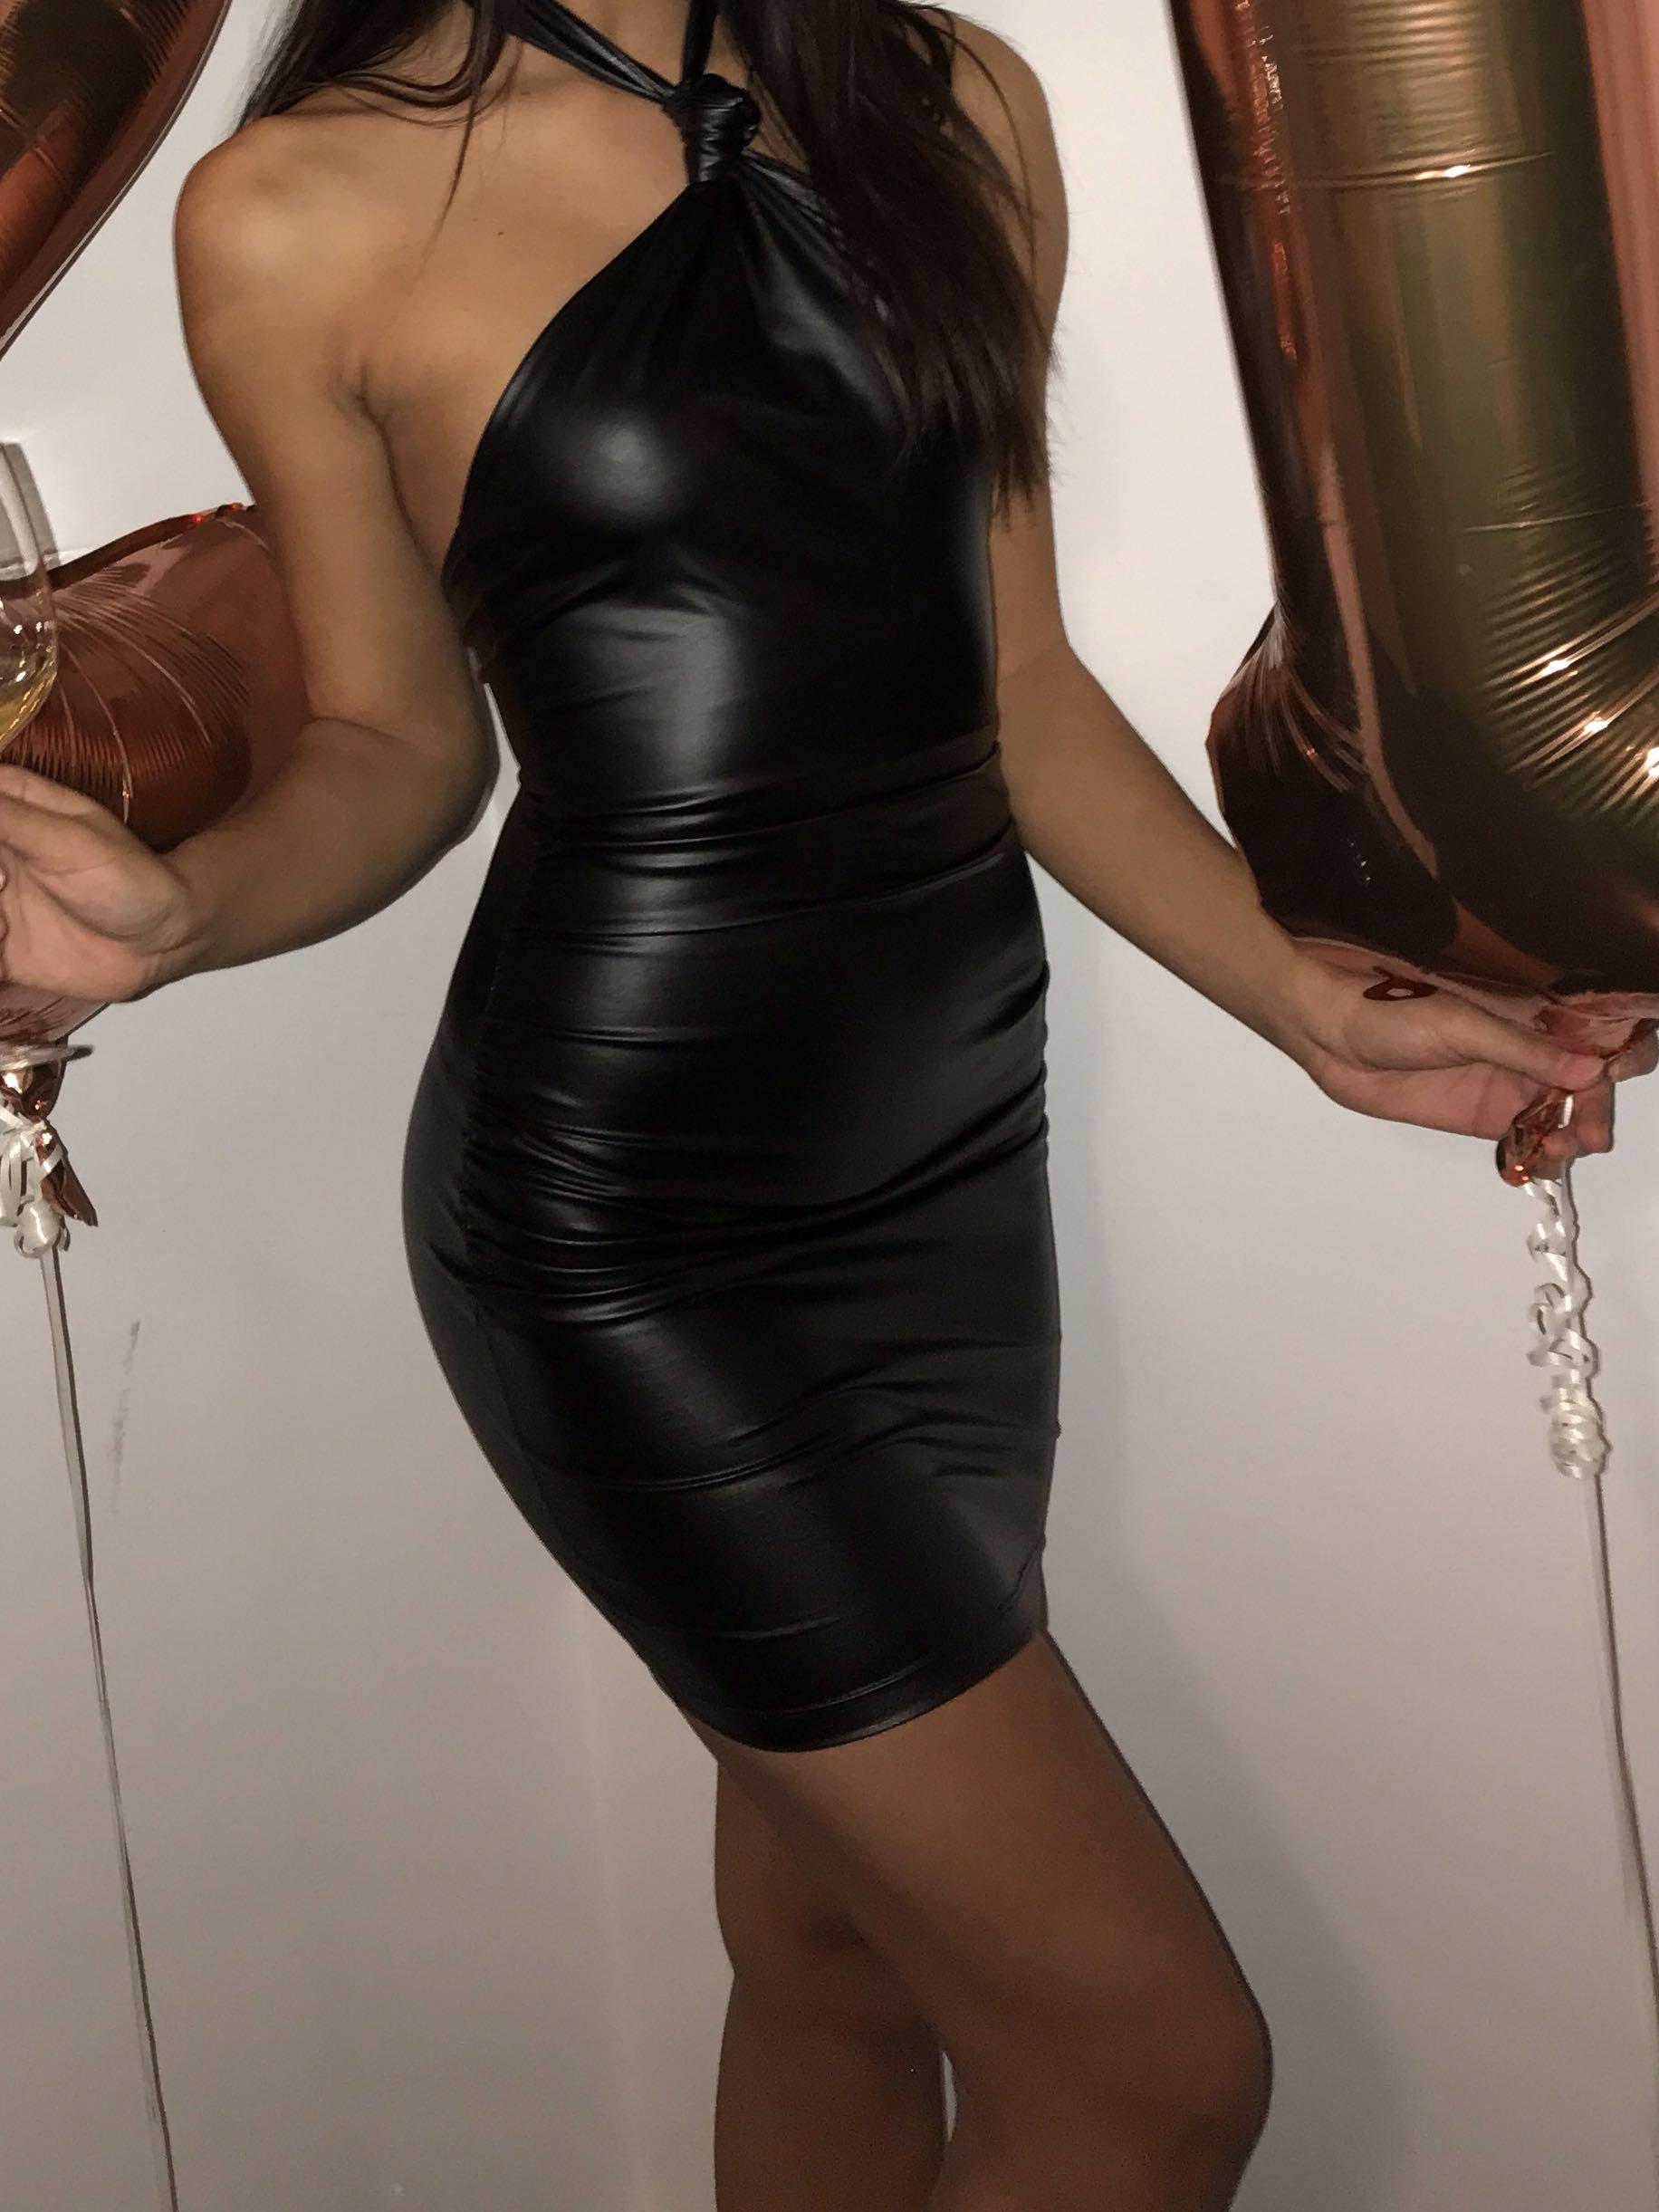 M Boutique Black Leather dress small brand new stunning